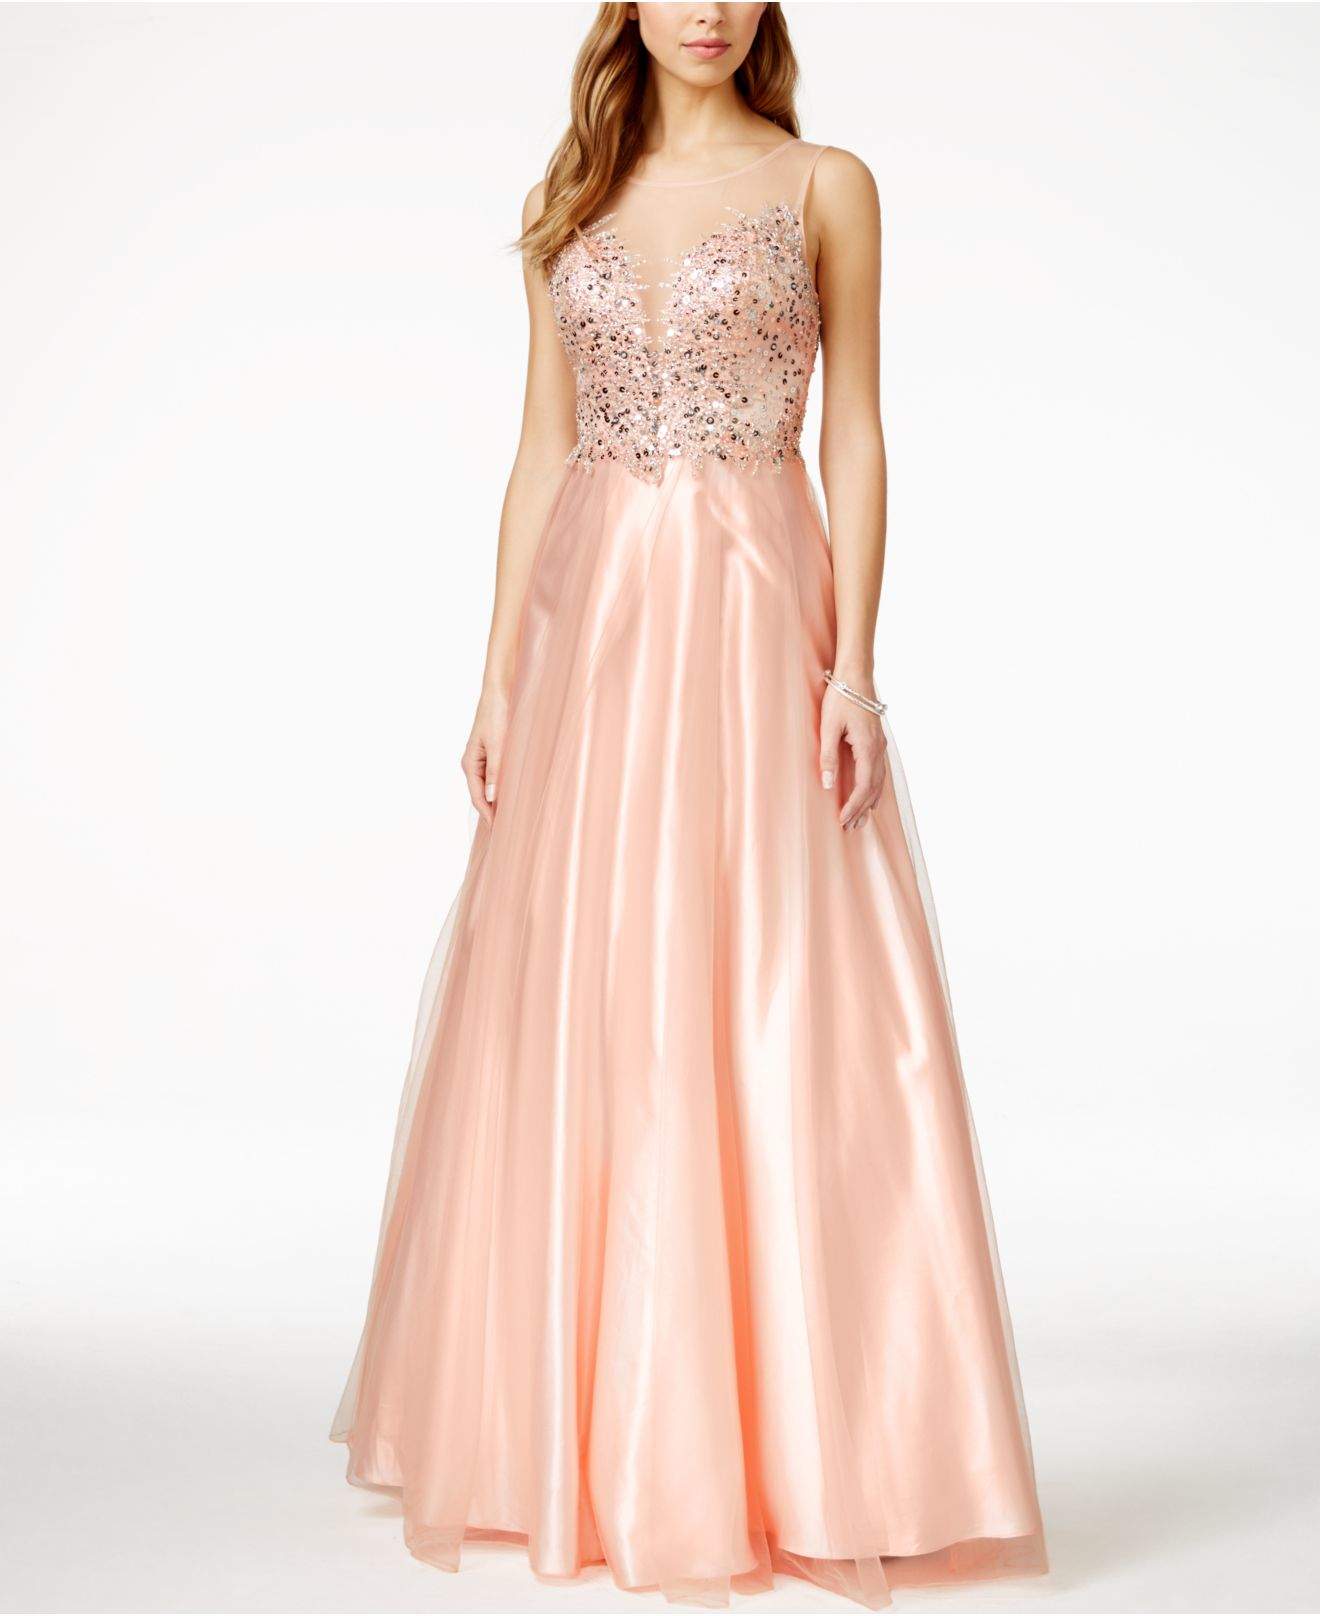 edcccfc628db Betsy & Adam Illusion Embellished Sweetheart Gown in Pink - Lyst